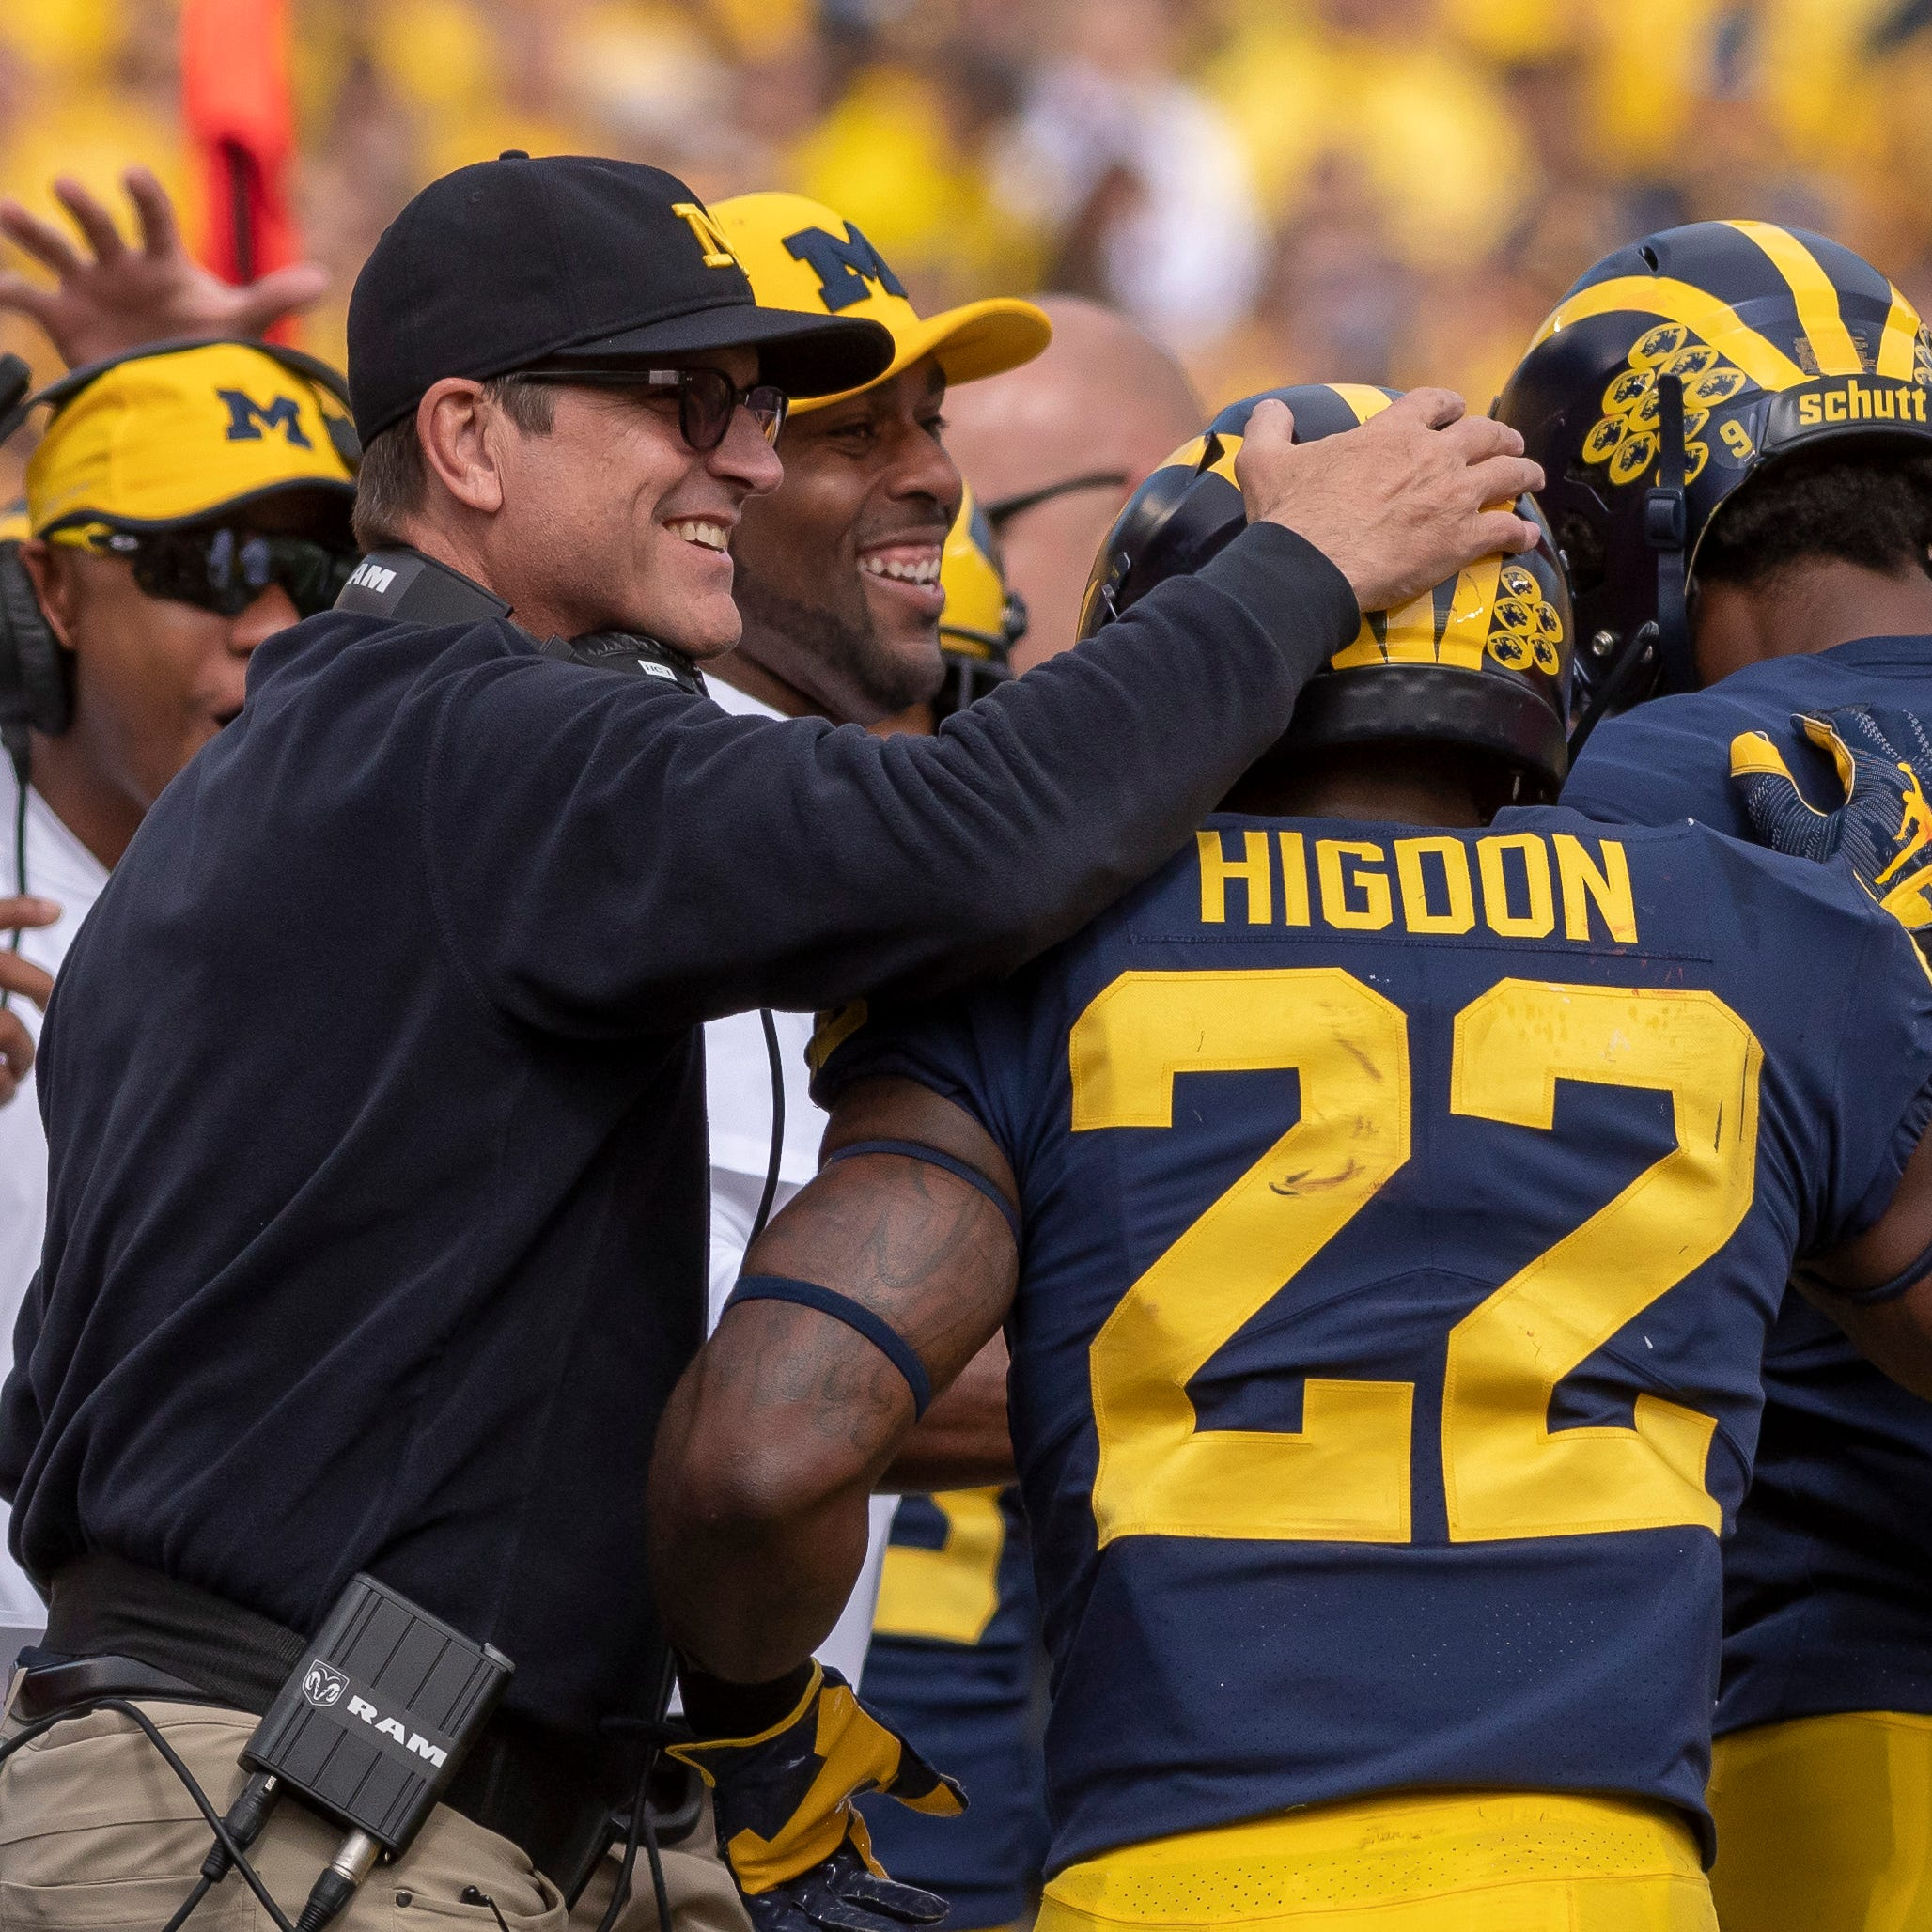 Harbaugh chides 'guarantee' question: Higdon 'confident' in Michigan